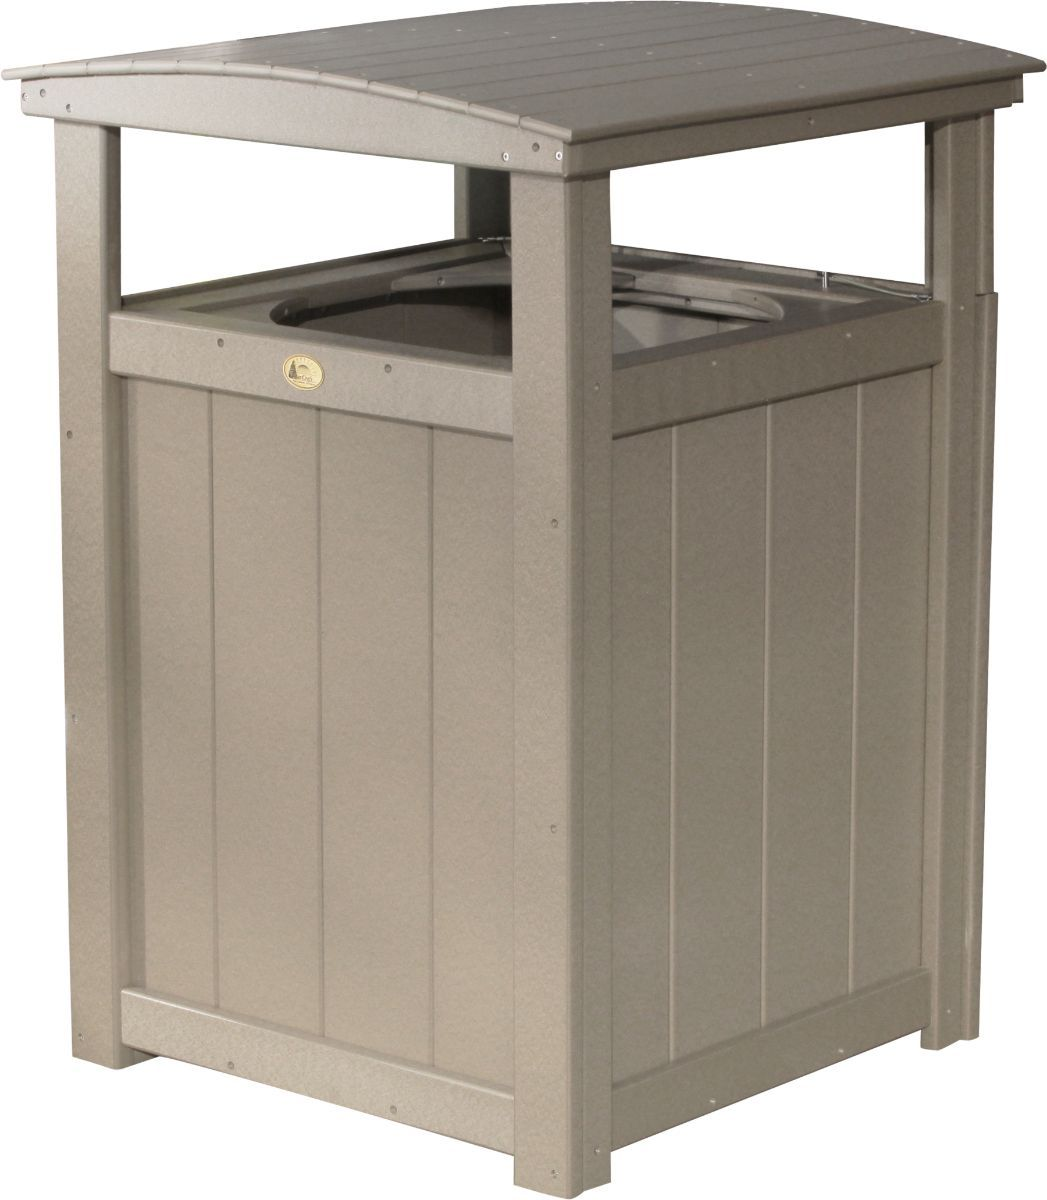 Weatherwood Pigeon Point Commercial Outdoor Trashcan